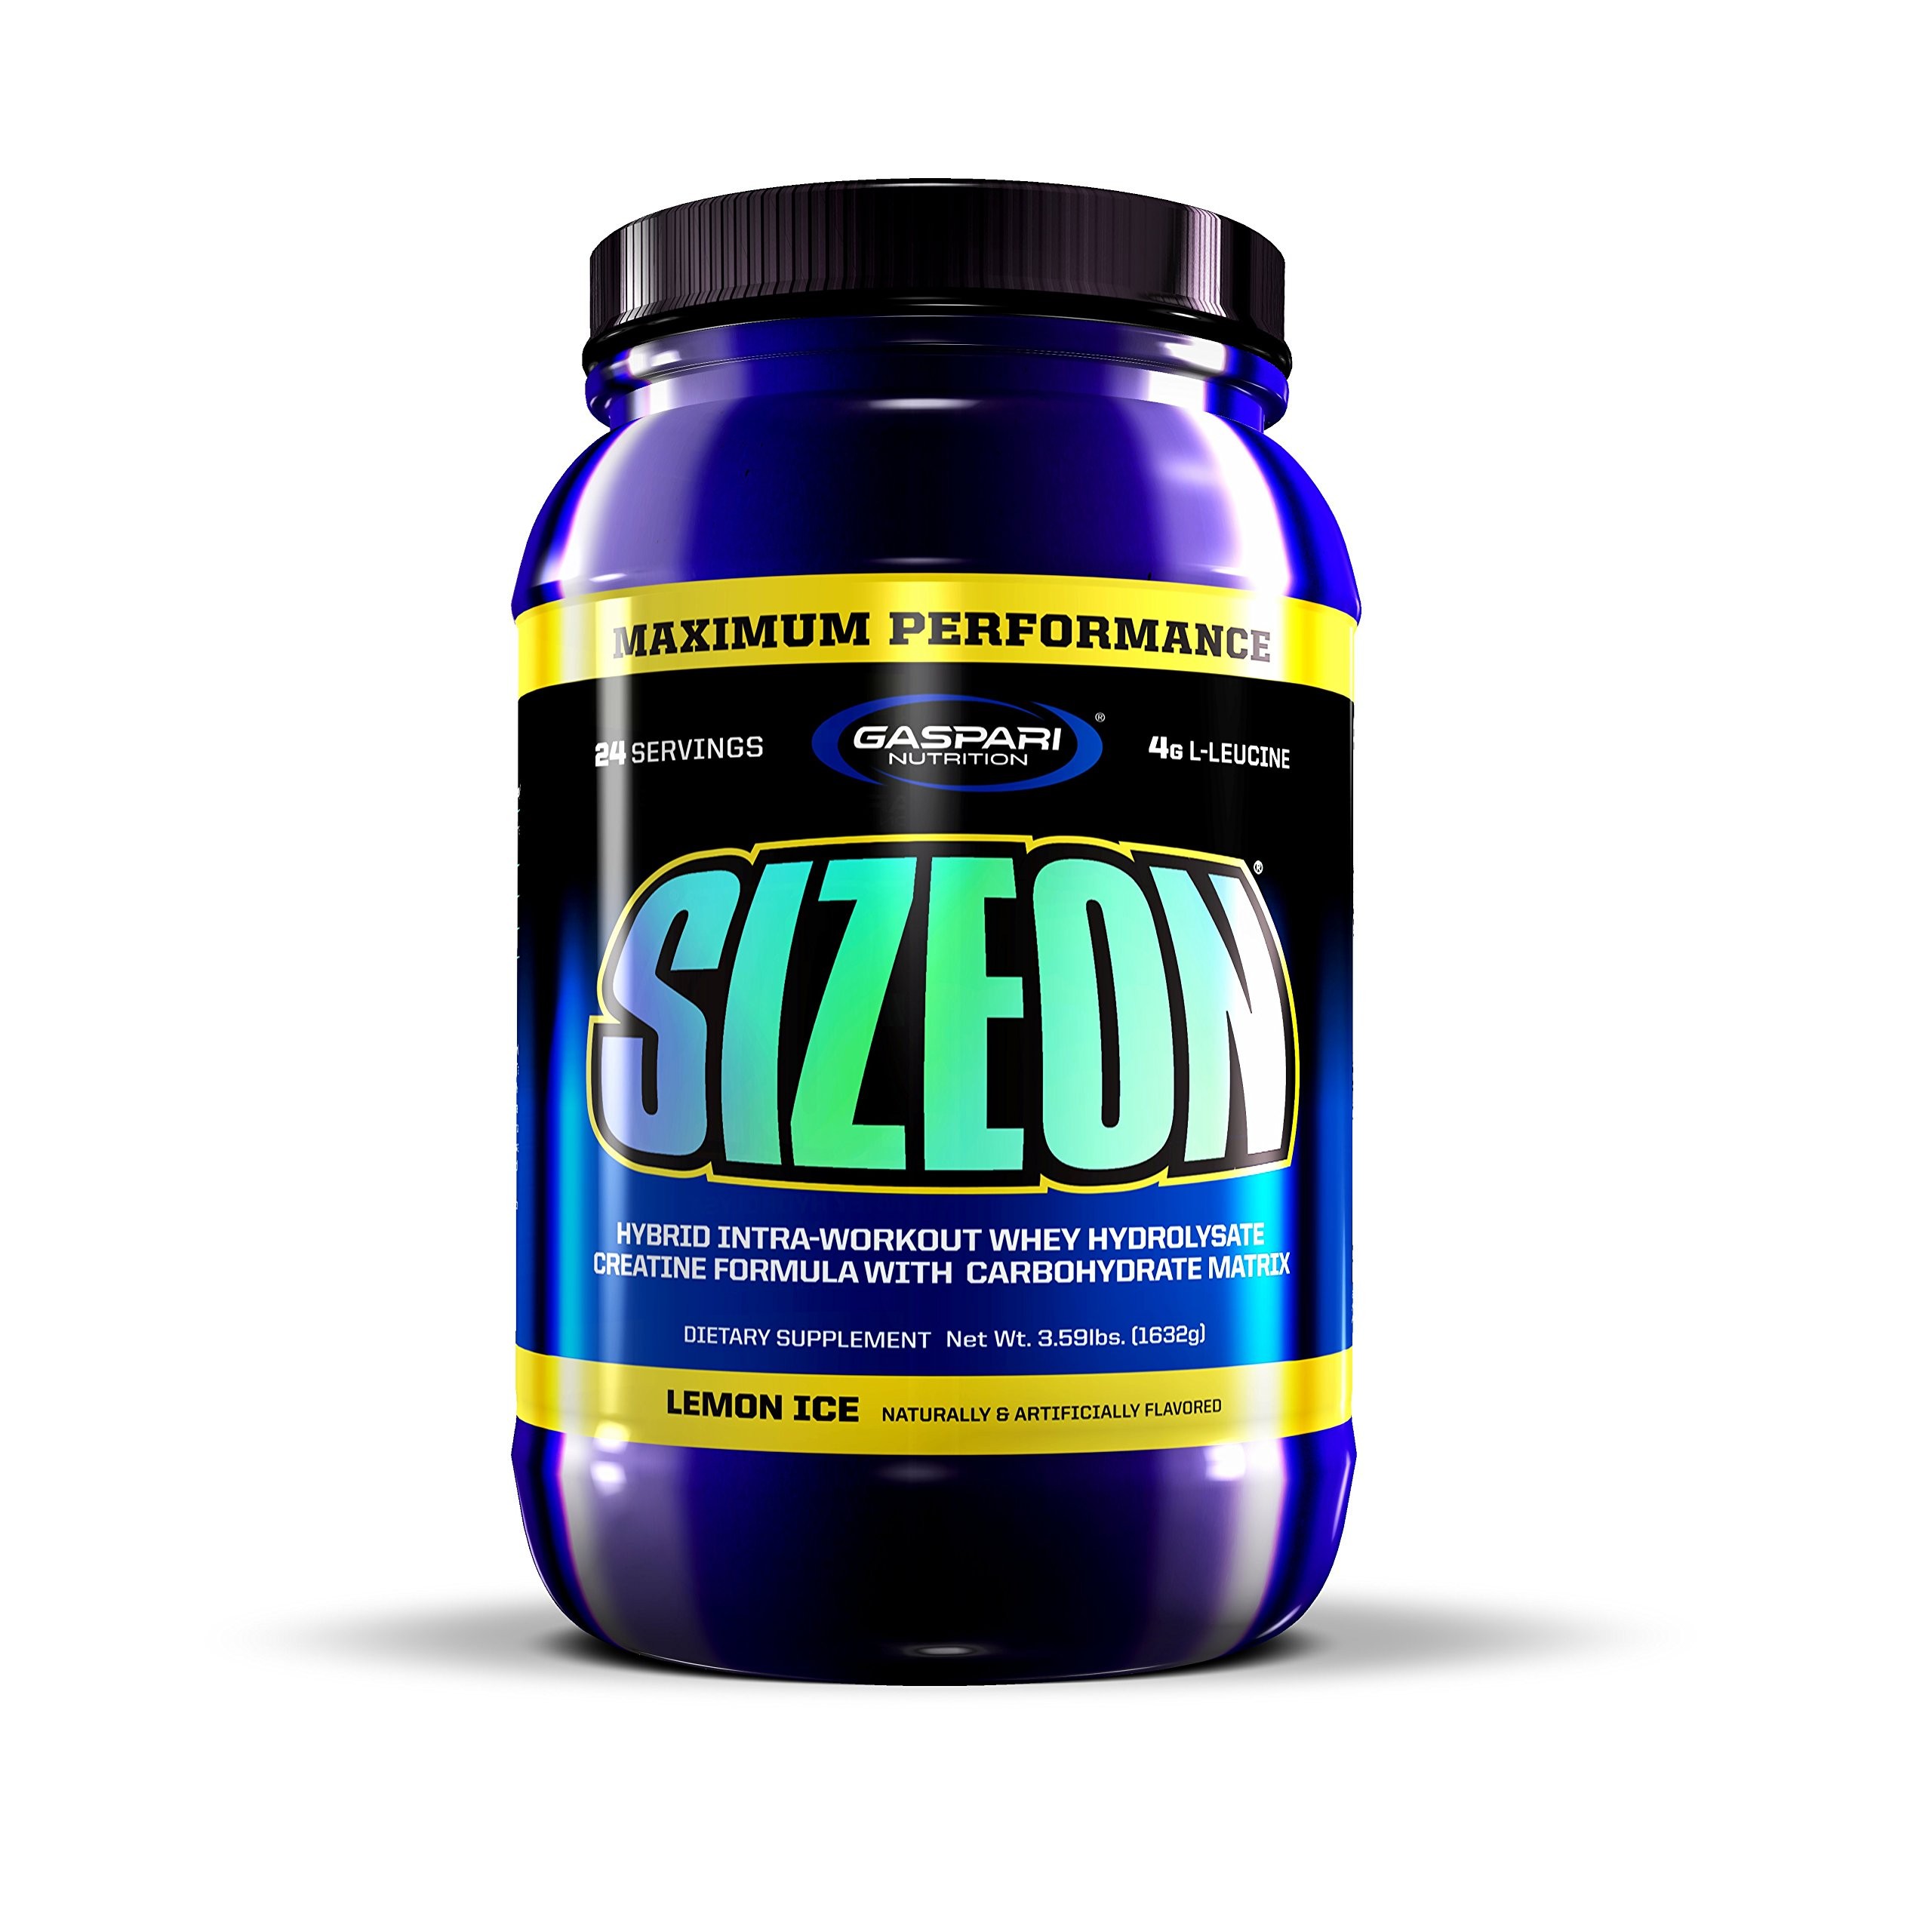 Gaspari Nutrition Sizeon Maximum Performance, Arctic Lemon Ice, 3.59-Pounds